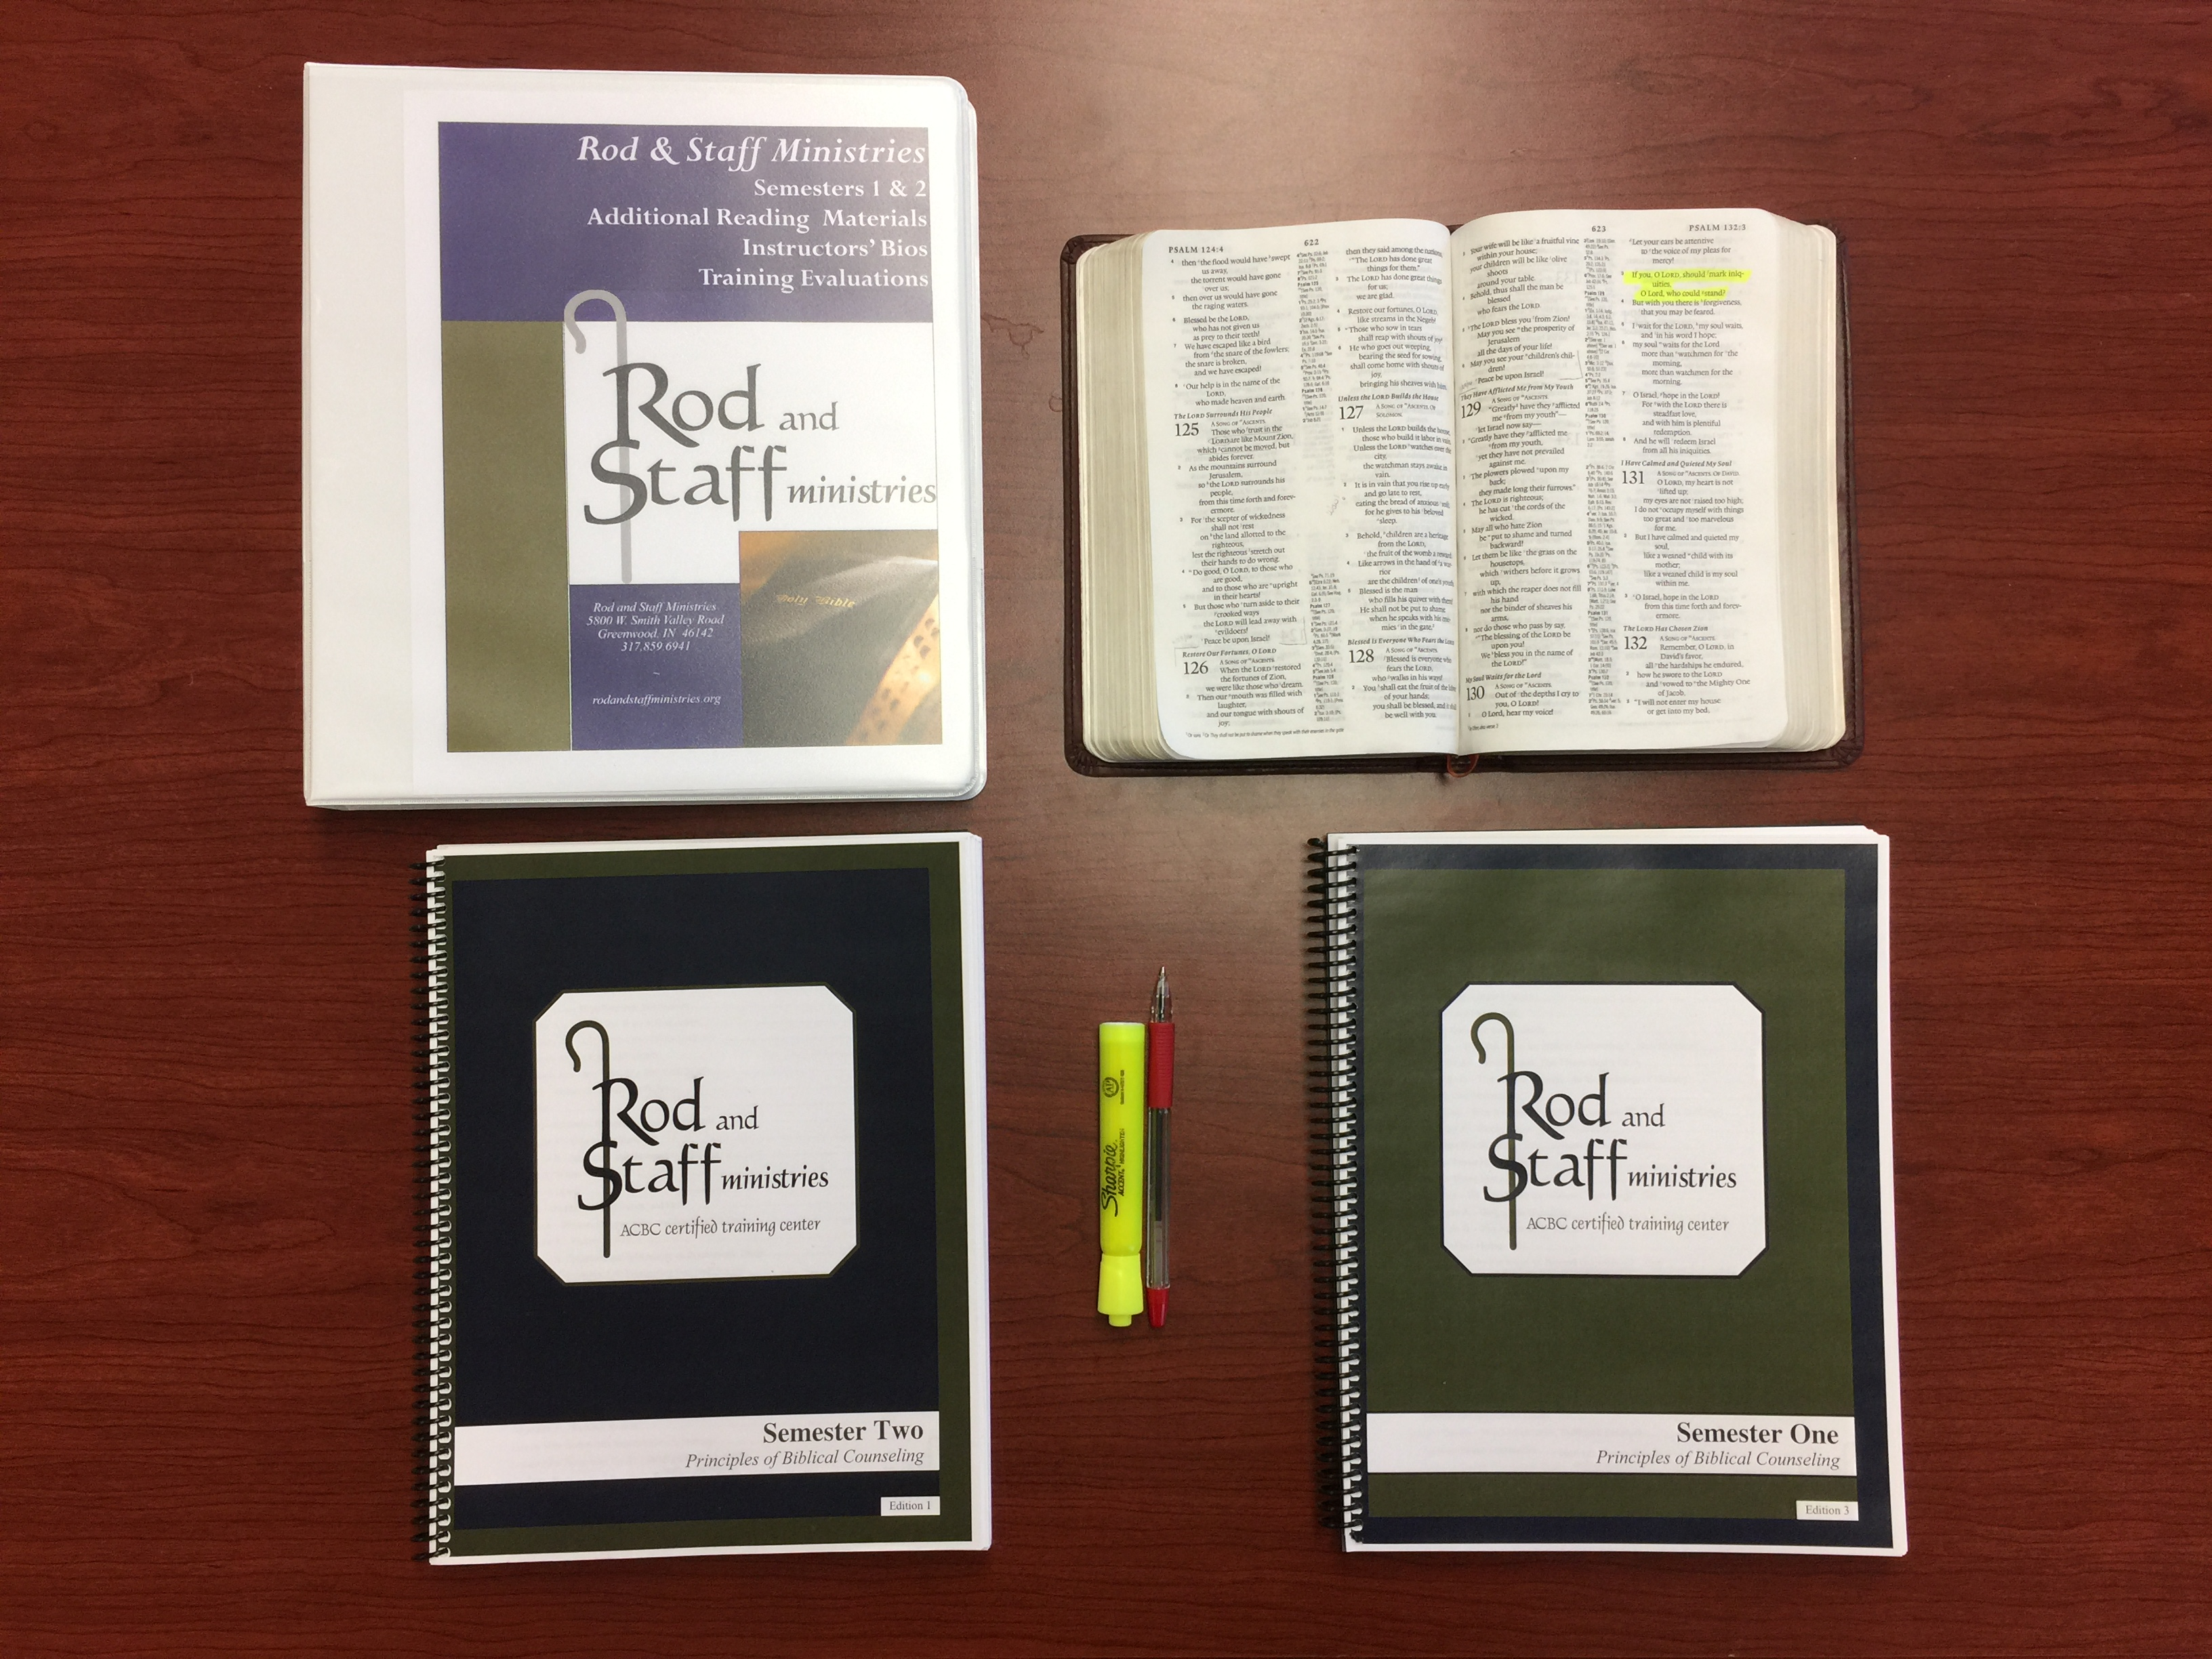 Rod and Staff Ministries Training Manuals